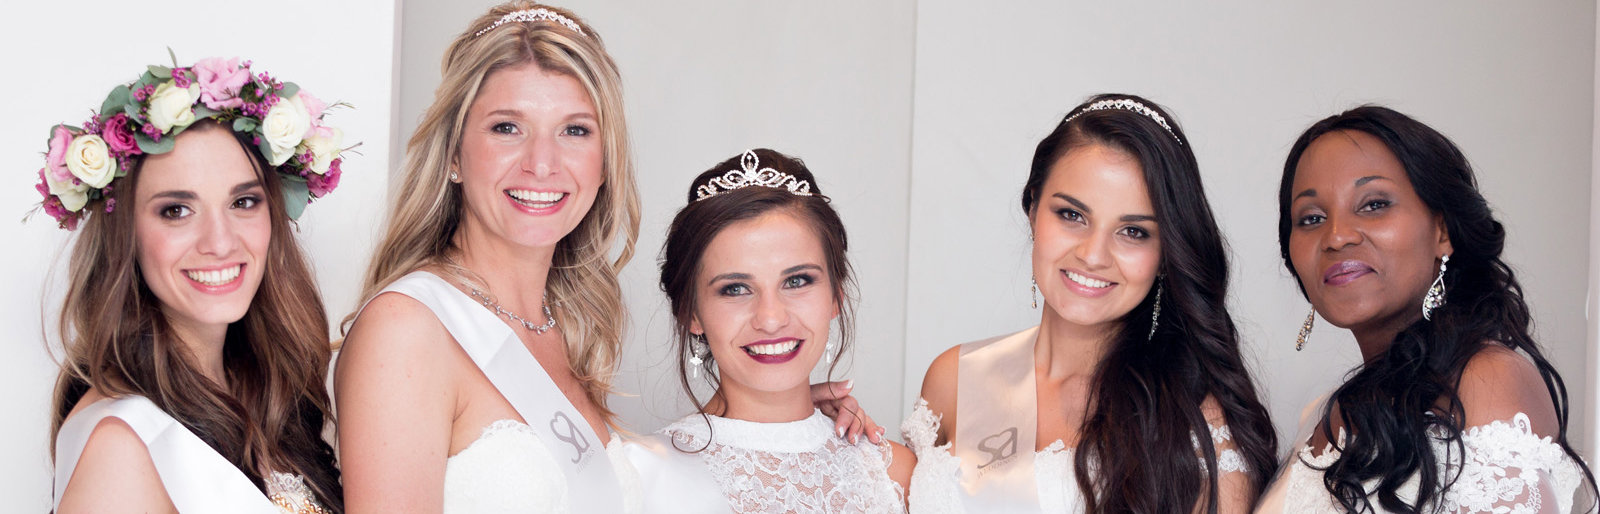 SA Weddings Crowns Bride of the Year 2016